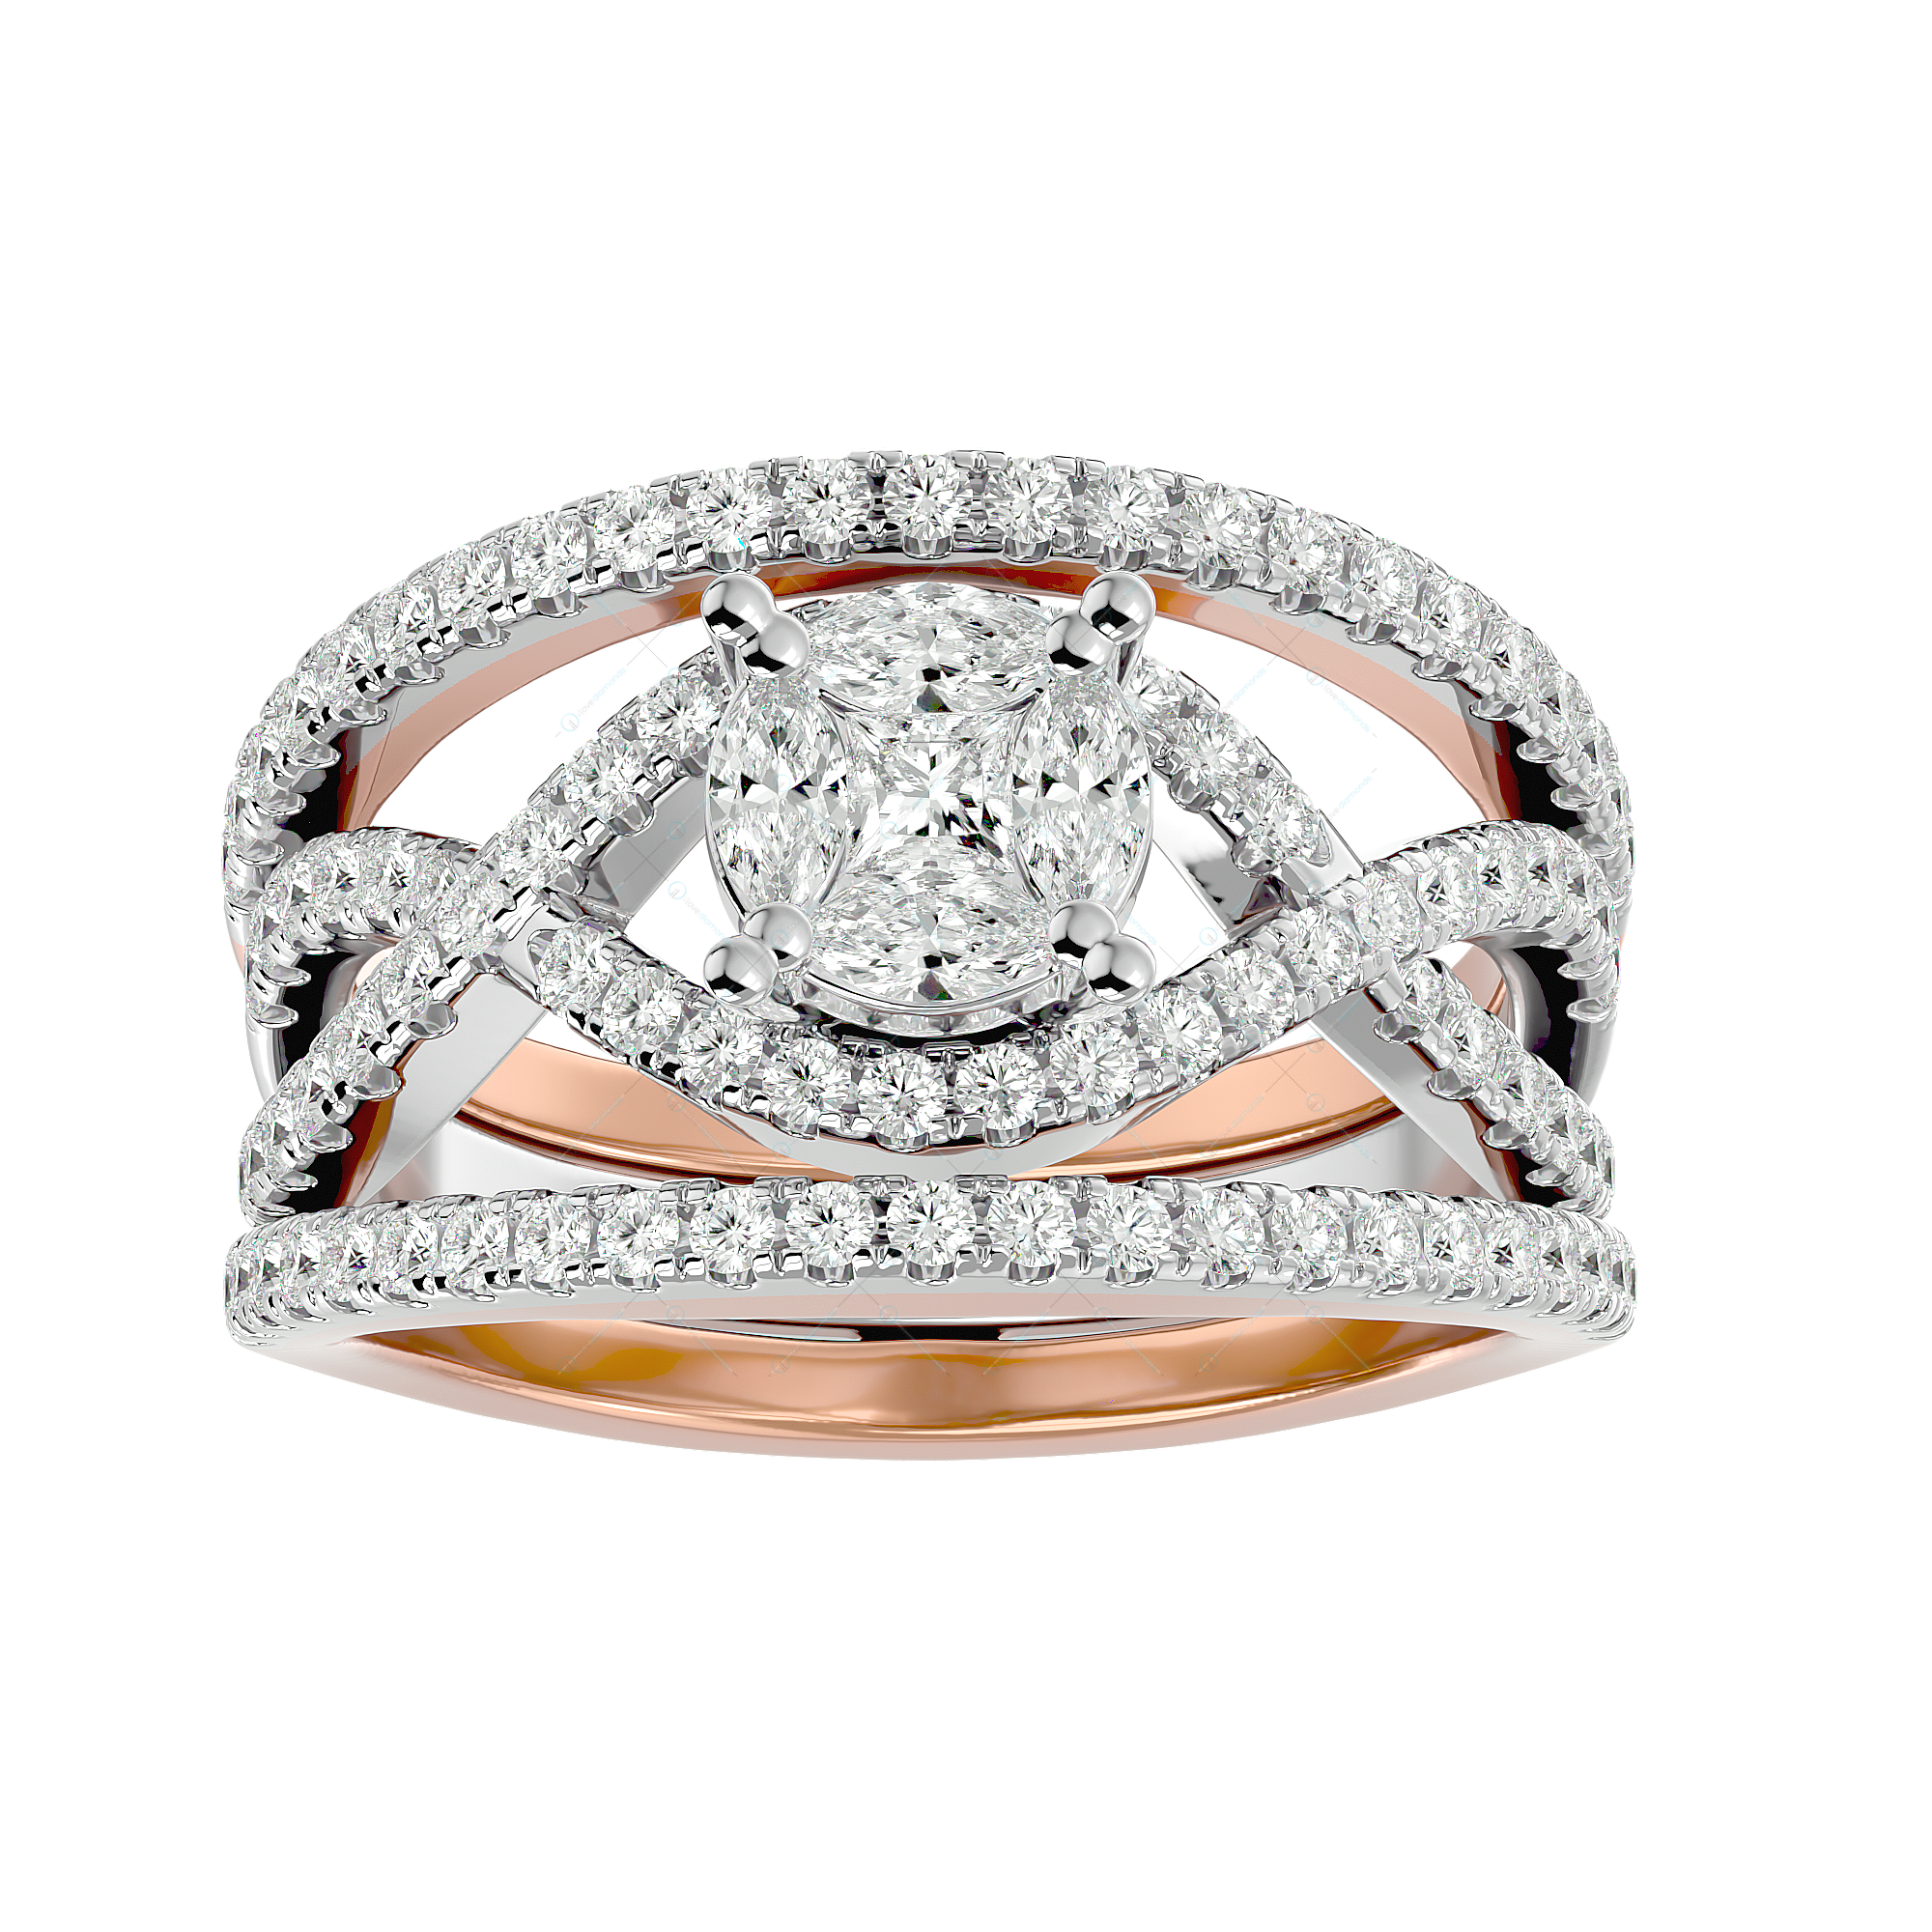 Fiery Sparkles Solitaire Illusion Diamond Ring in Pink Gold for Women v2